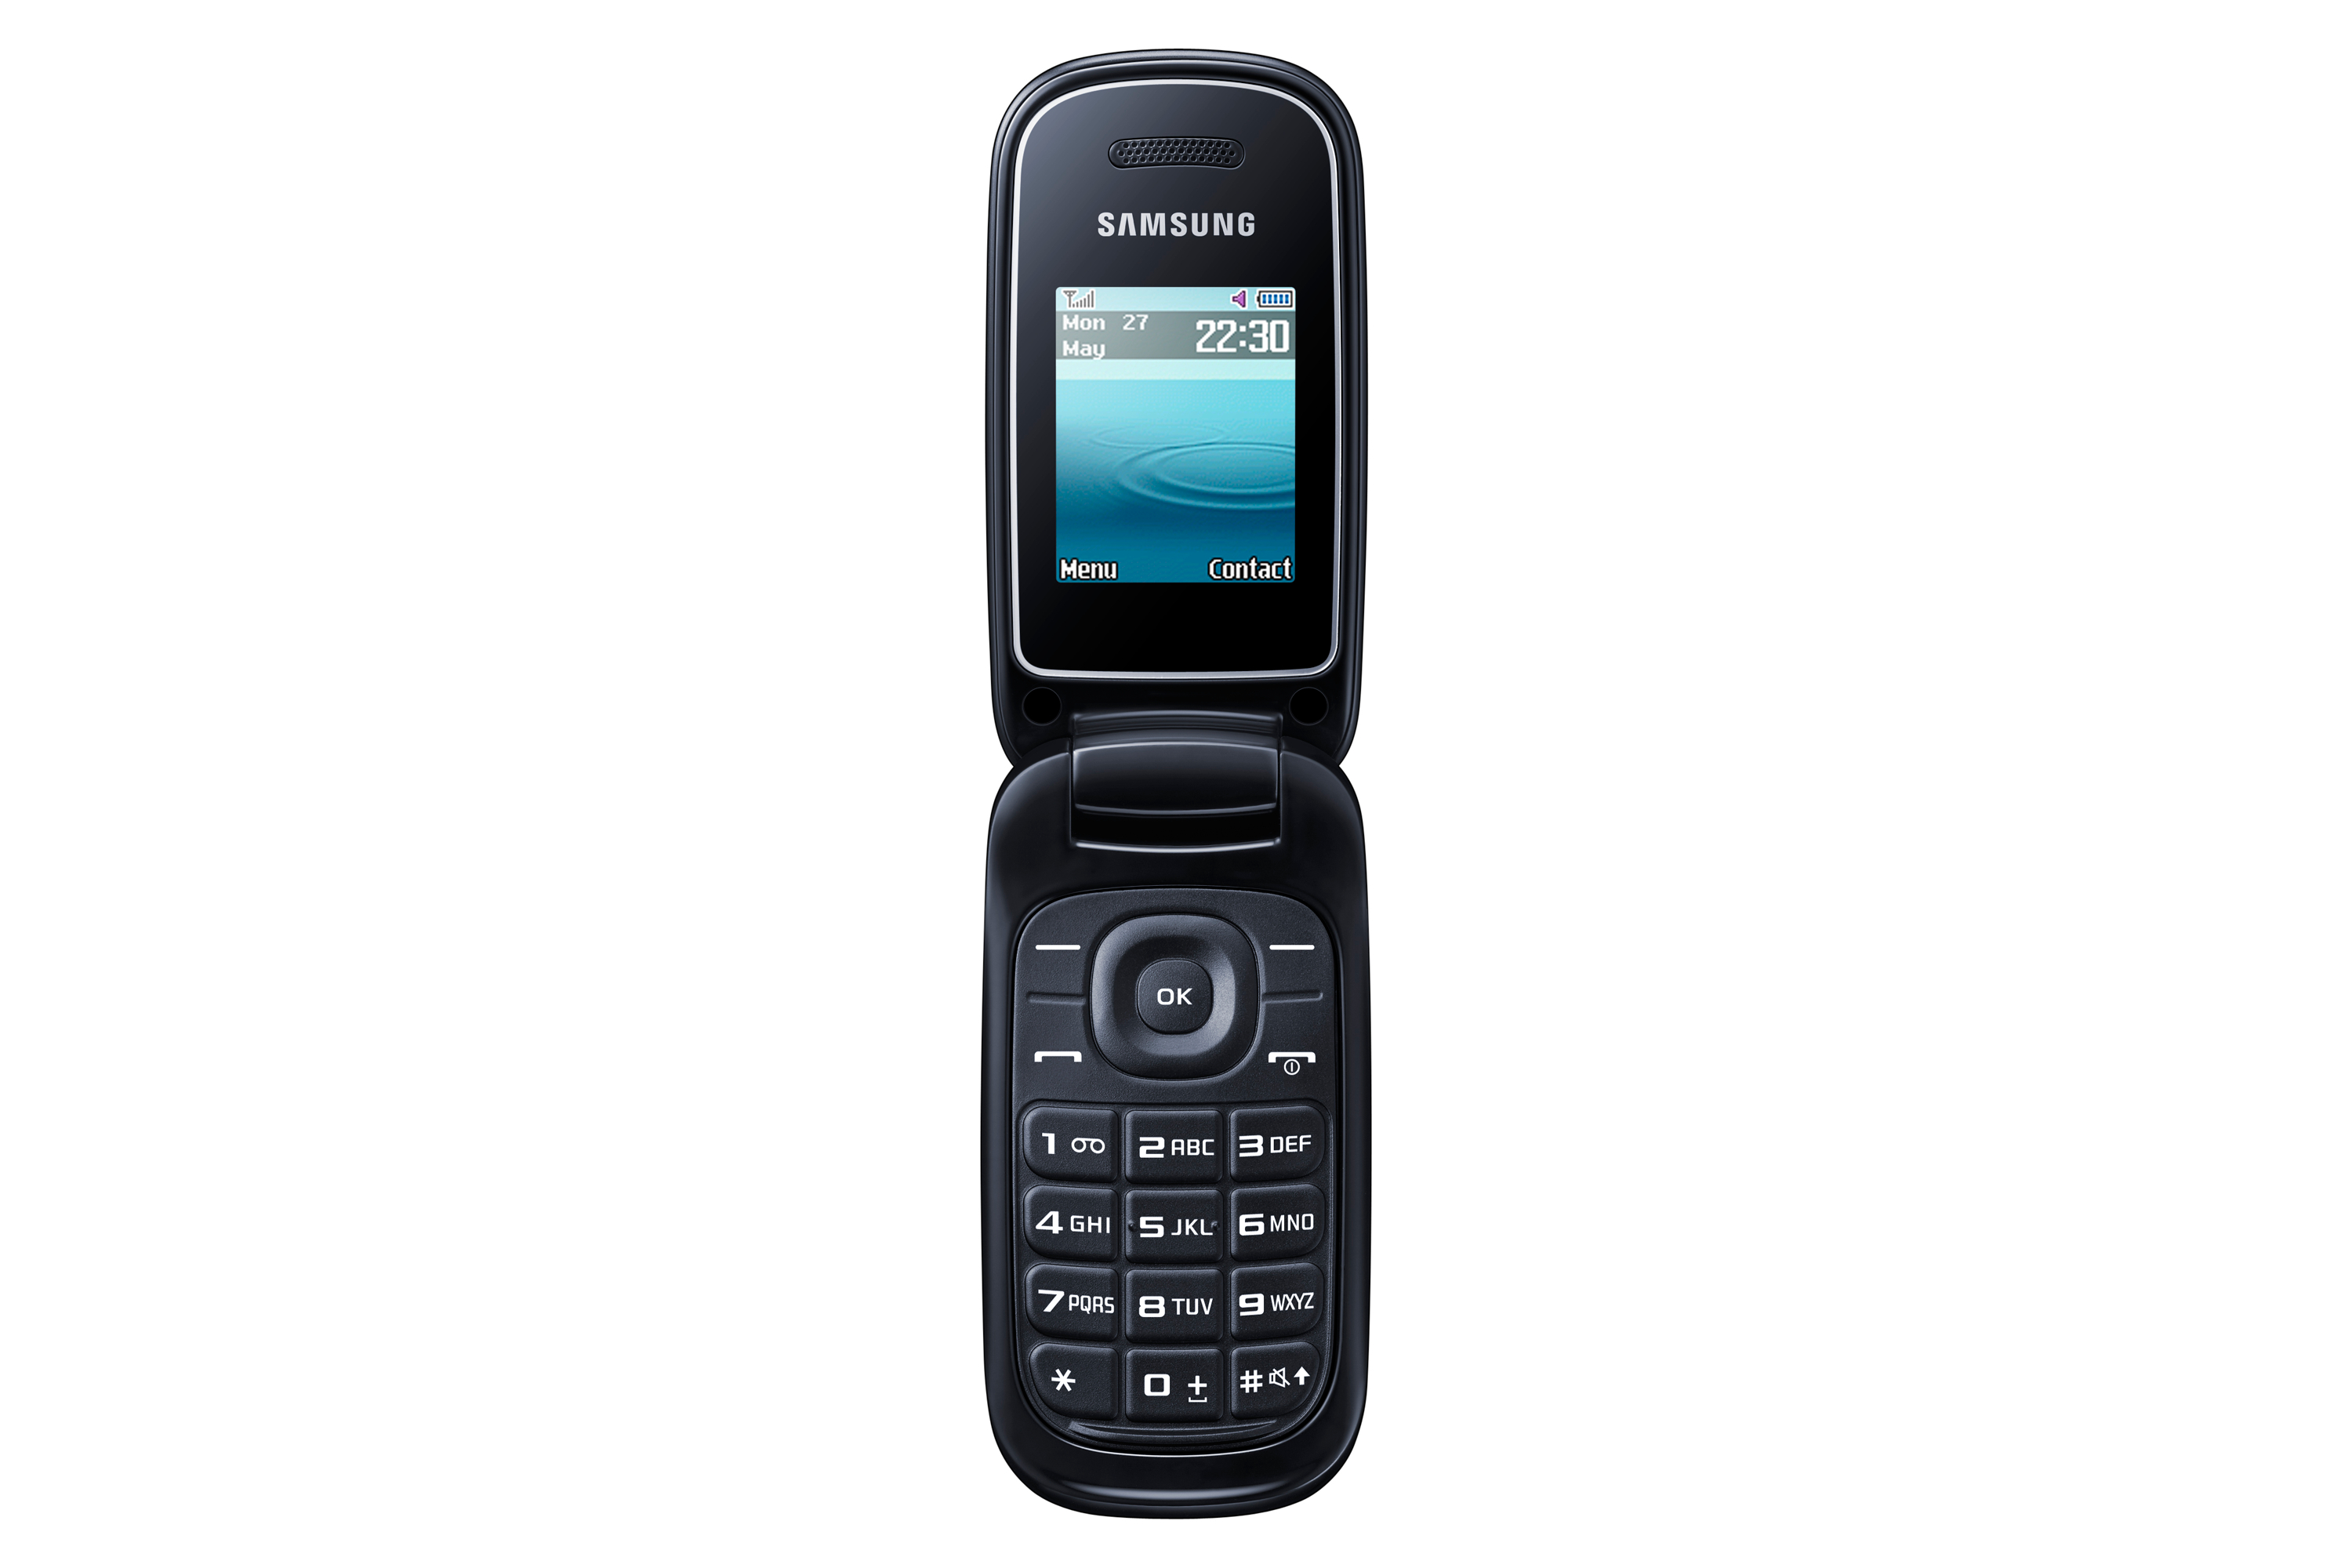 Samsung e1270 black flip mobile phone locked to virgin for How to buy a house to flip